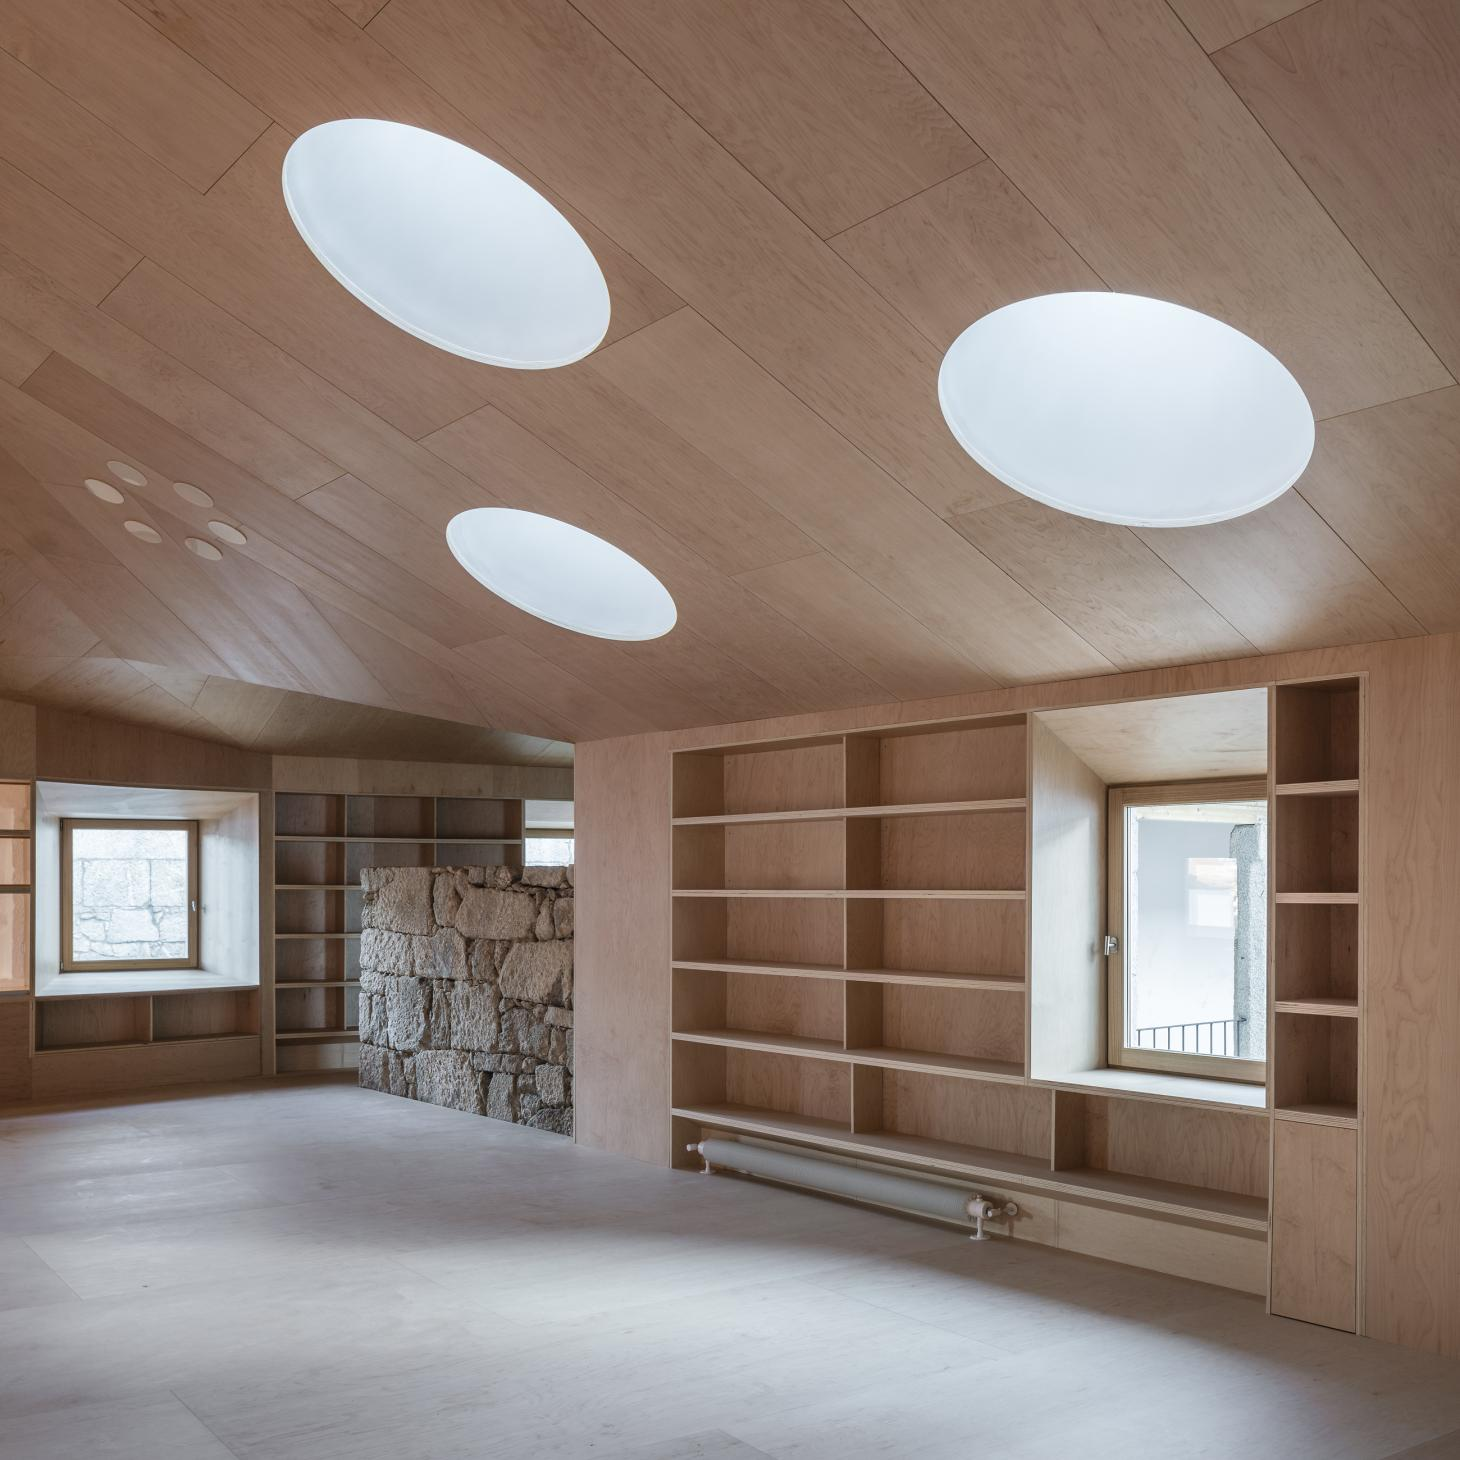 Baiona Library timber interior, designed by Murado & Elvira